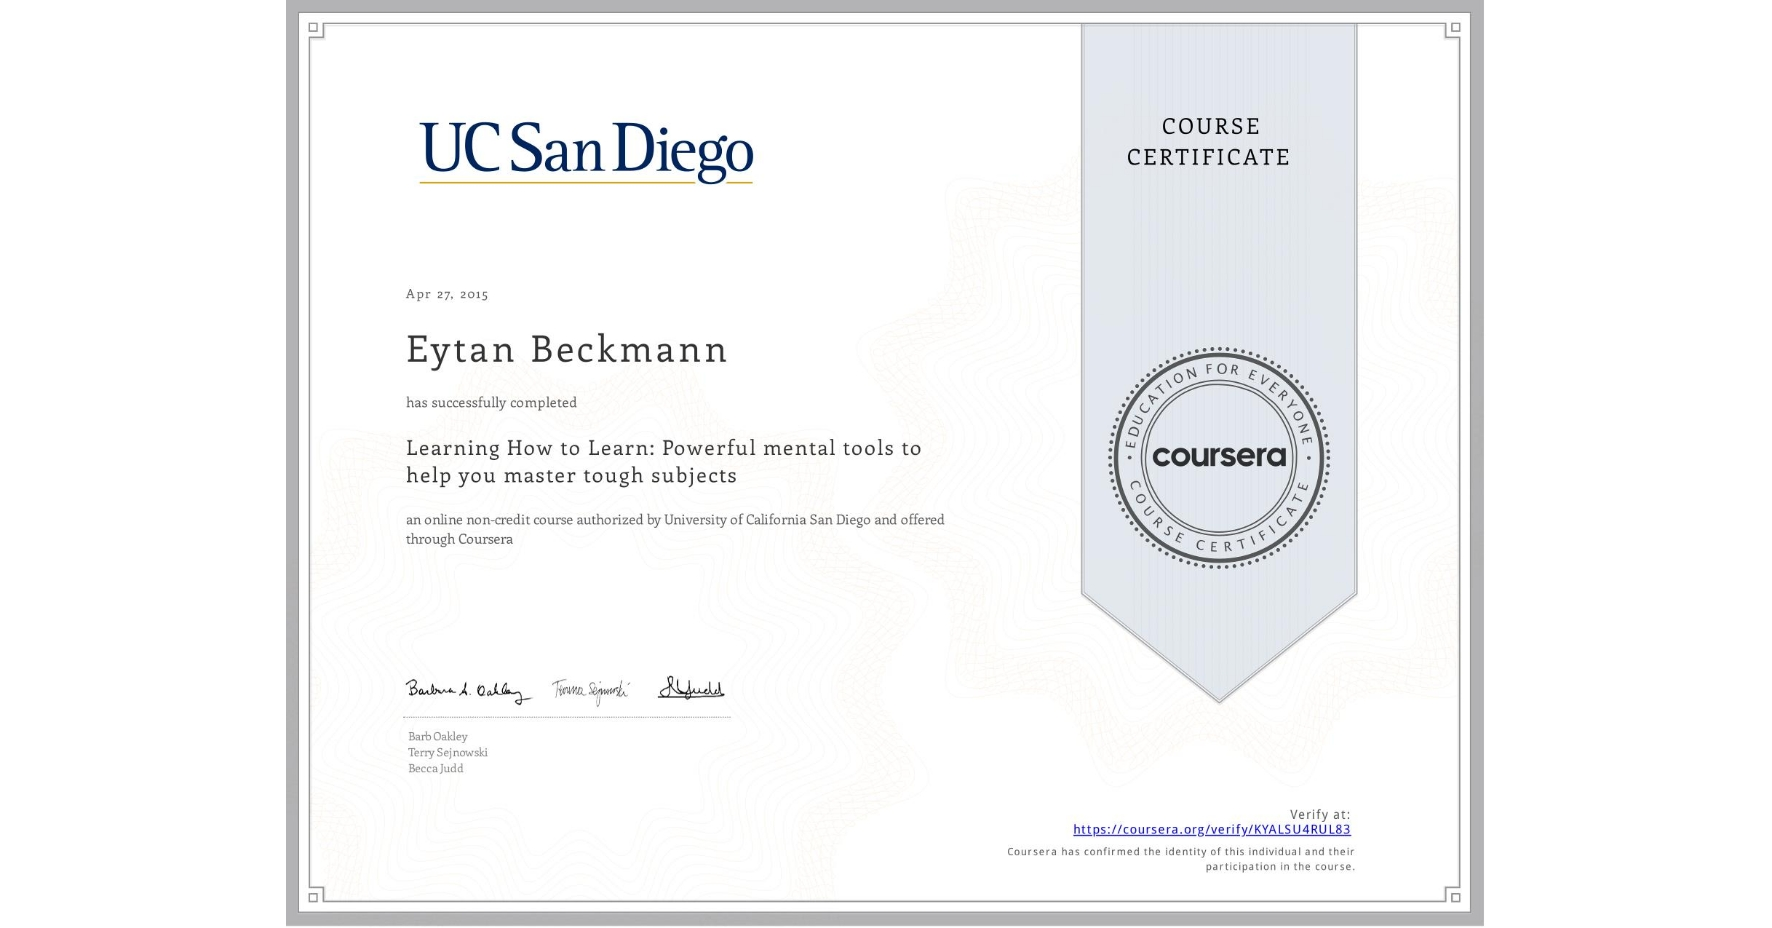 View certificate for Eytan Beckmann, Learning How to Learn: Powerful mental tools to help you master tough subjects, an online non-credit course authorized by McMaster University & University of California San Diego and offered through Coursera